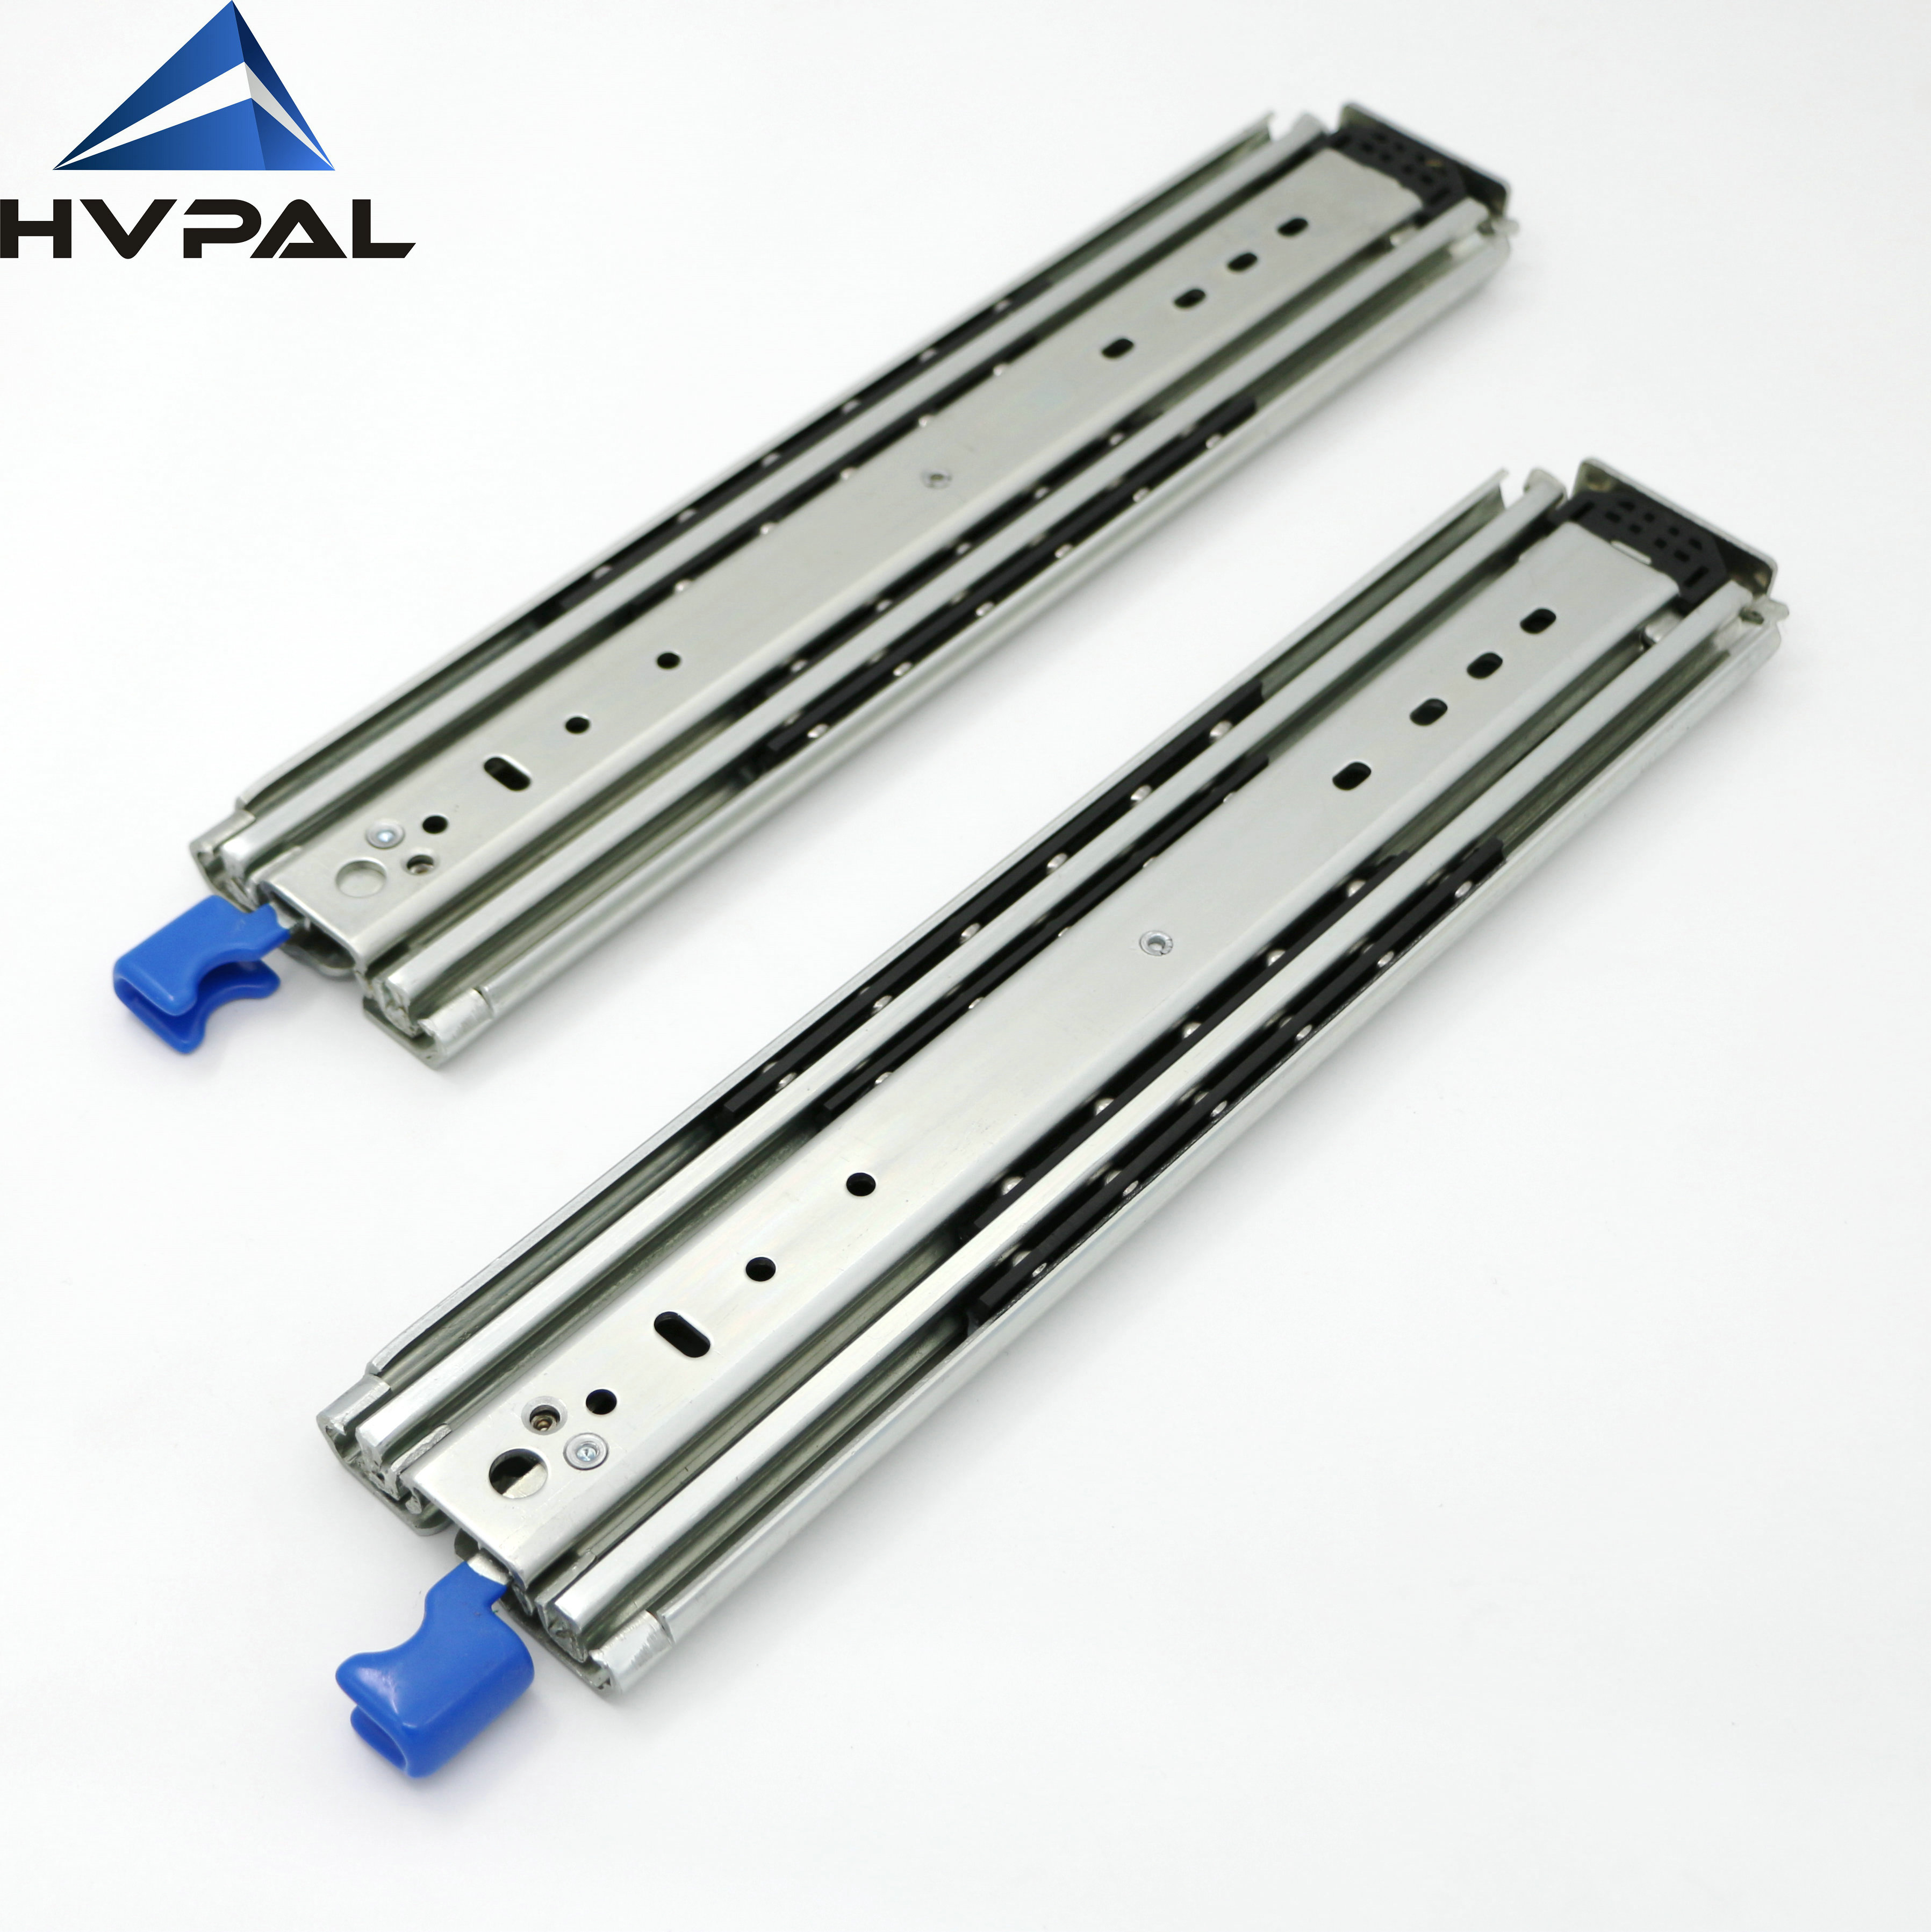 76mm Full Extension Drawer Slide For Industry Equipment